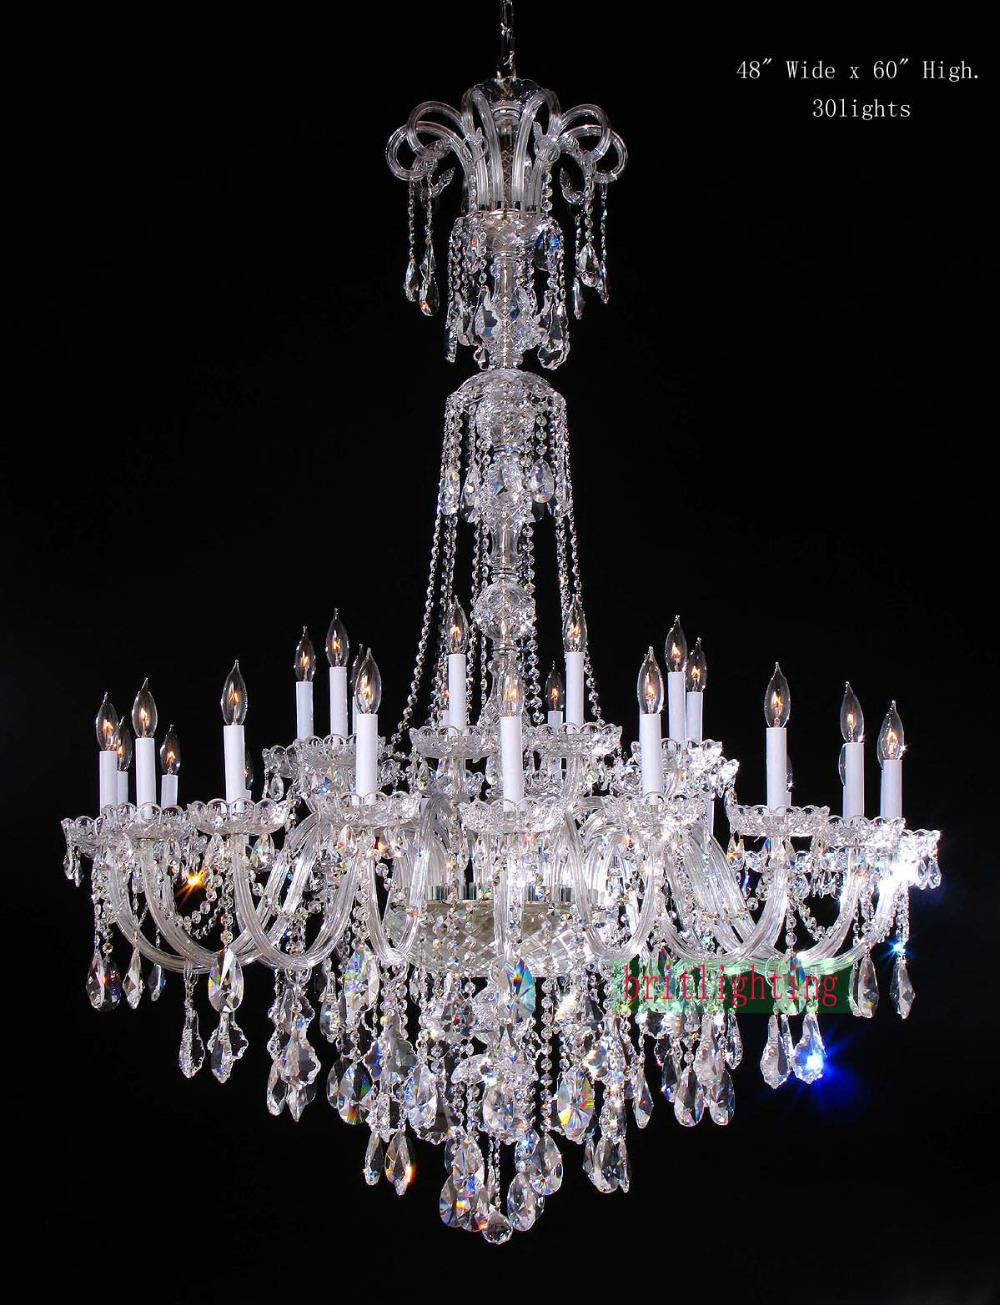 Lamp Modern Crystal Chandeliers 5 Star Hotel